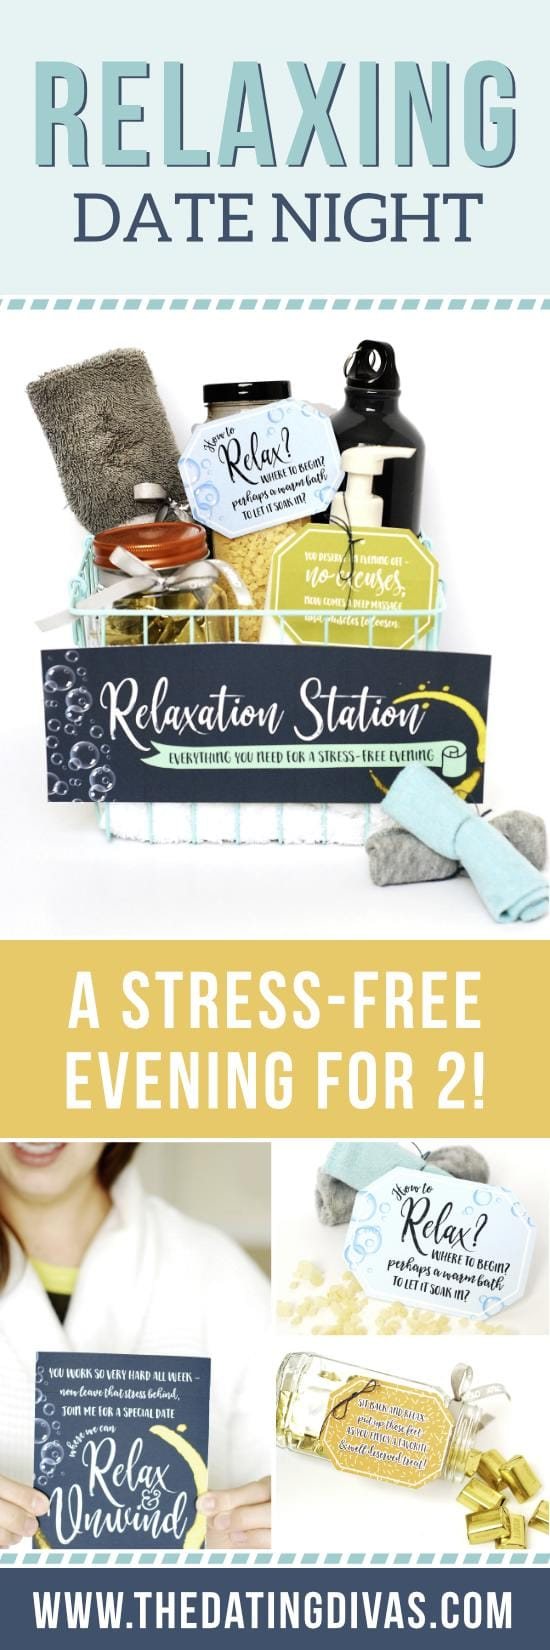 Check out these fabulous relaxing date ideas to help put your spouse at ease after a stressful week! #TheDatingDiva #AtHomeDates #RelaxationStation